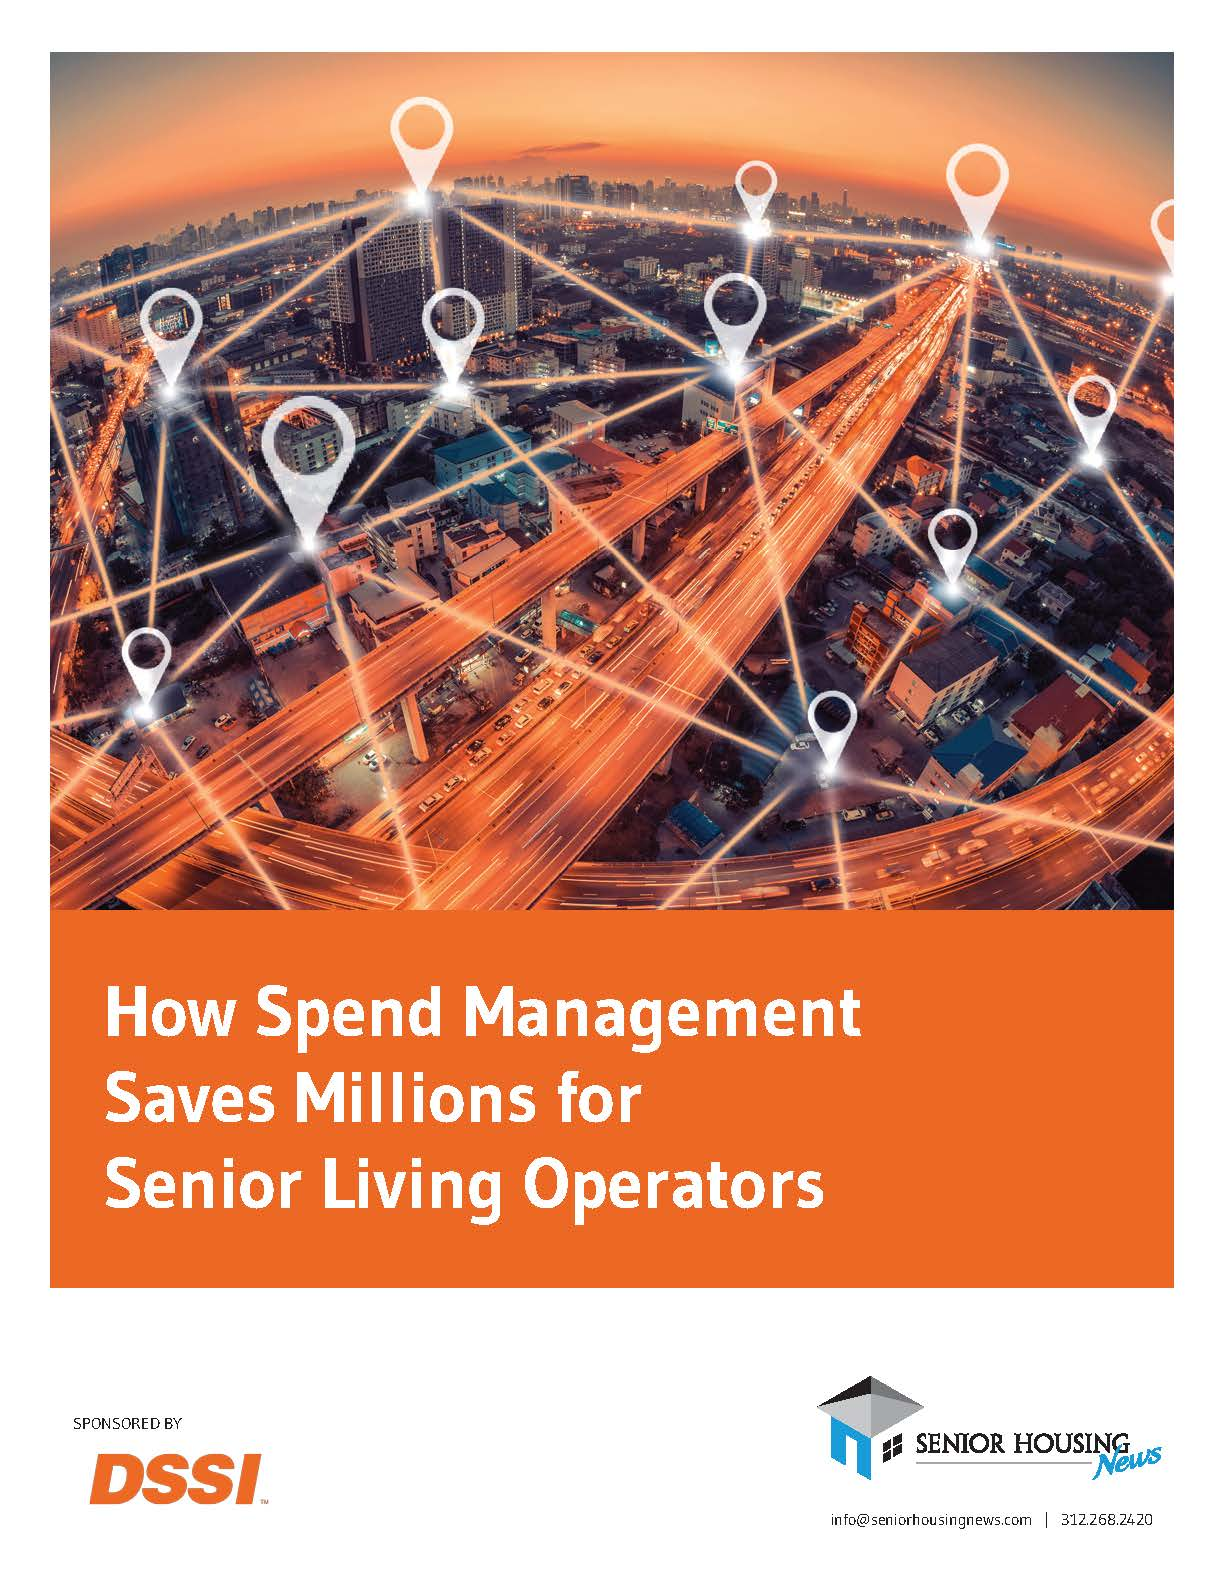 How Spend Management Saves Millions for Senior Living Operators